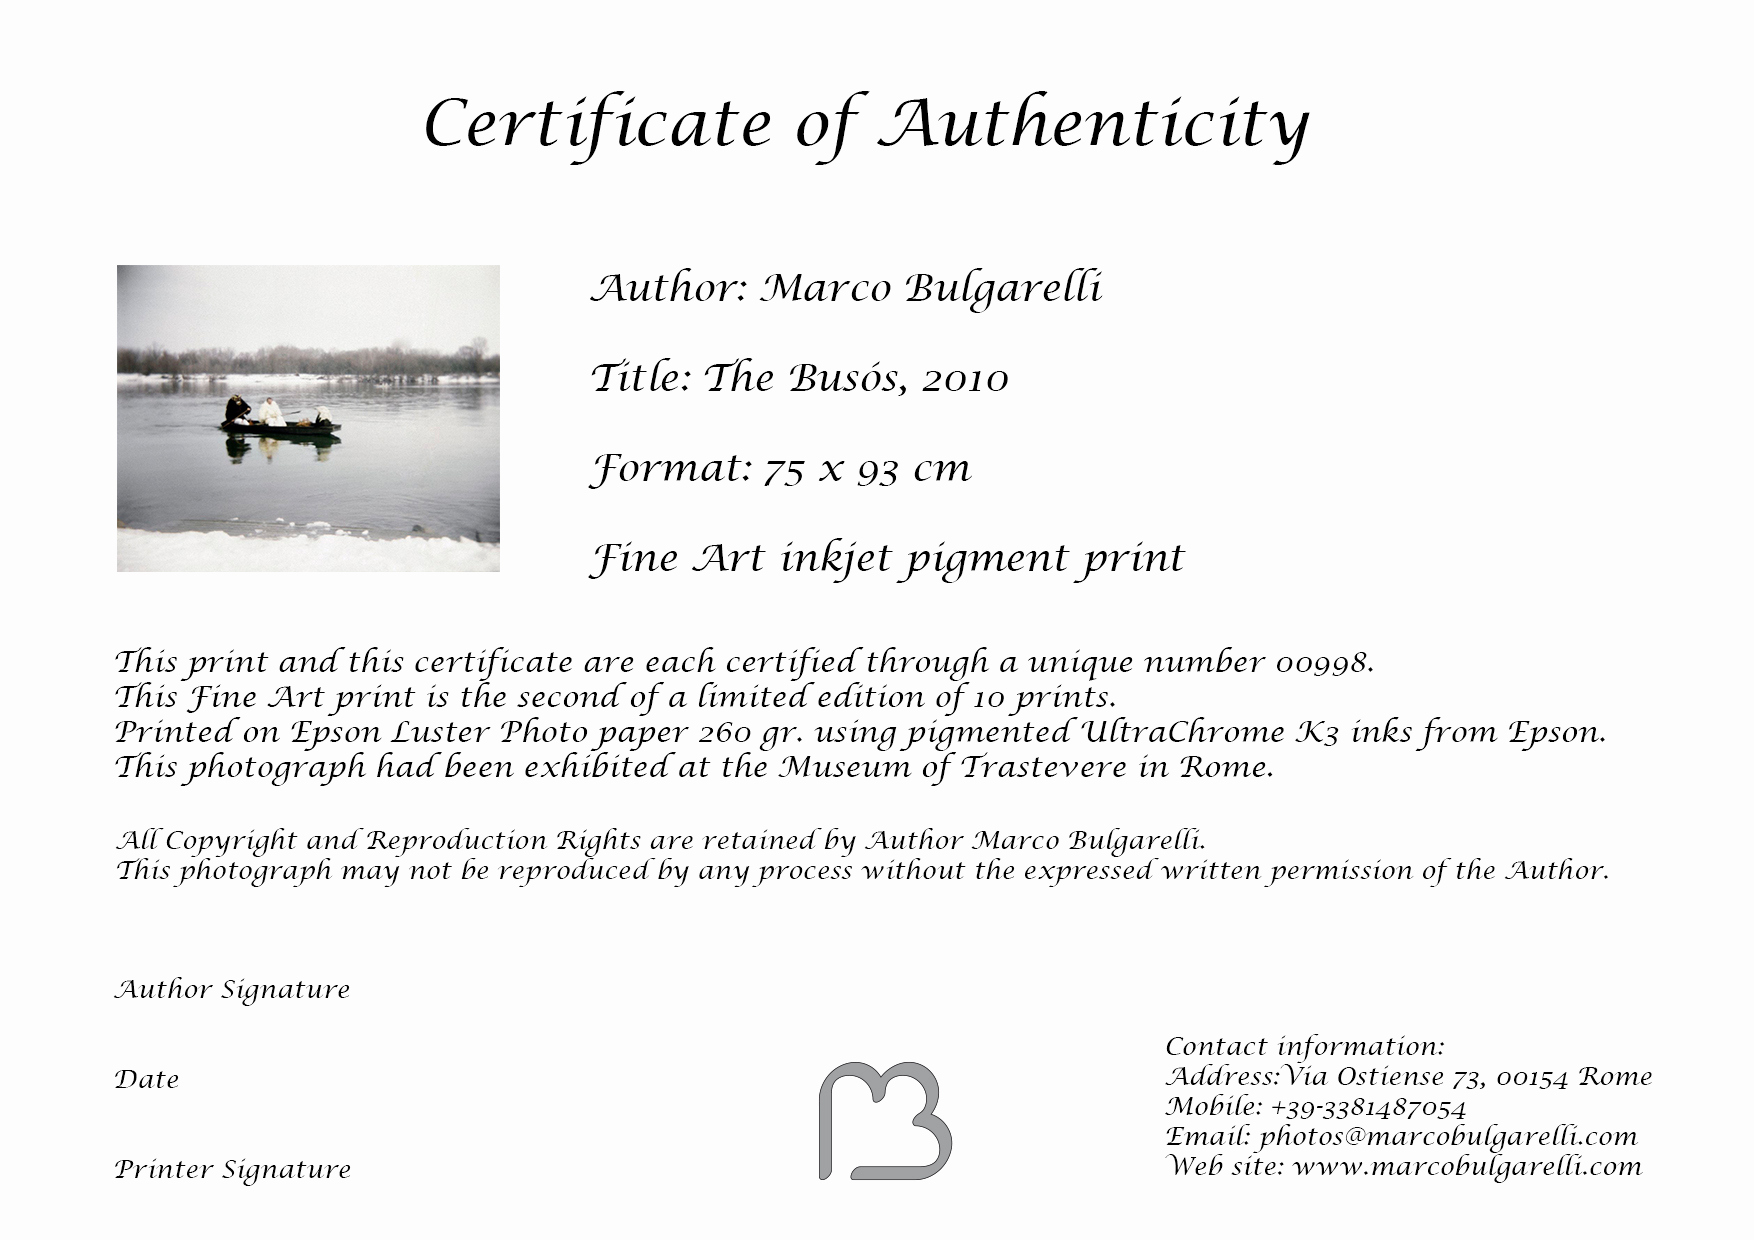 Certificate Of Authenticity Photography Template Fresh Rome Black and White Photography Marco Bulgarelli Fine